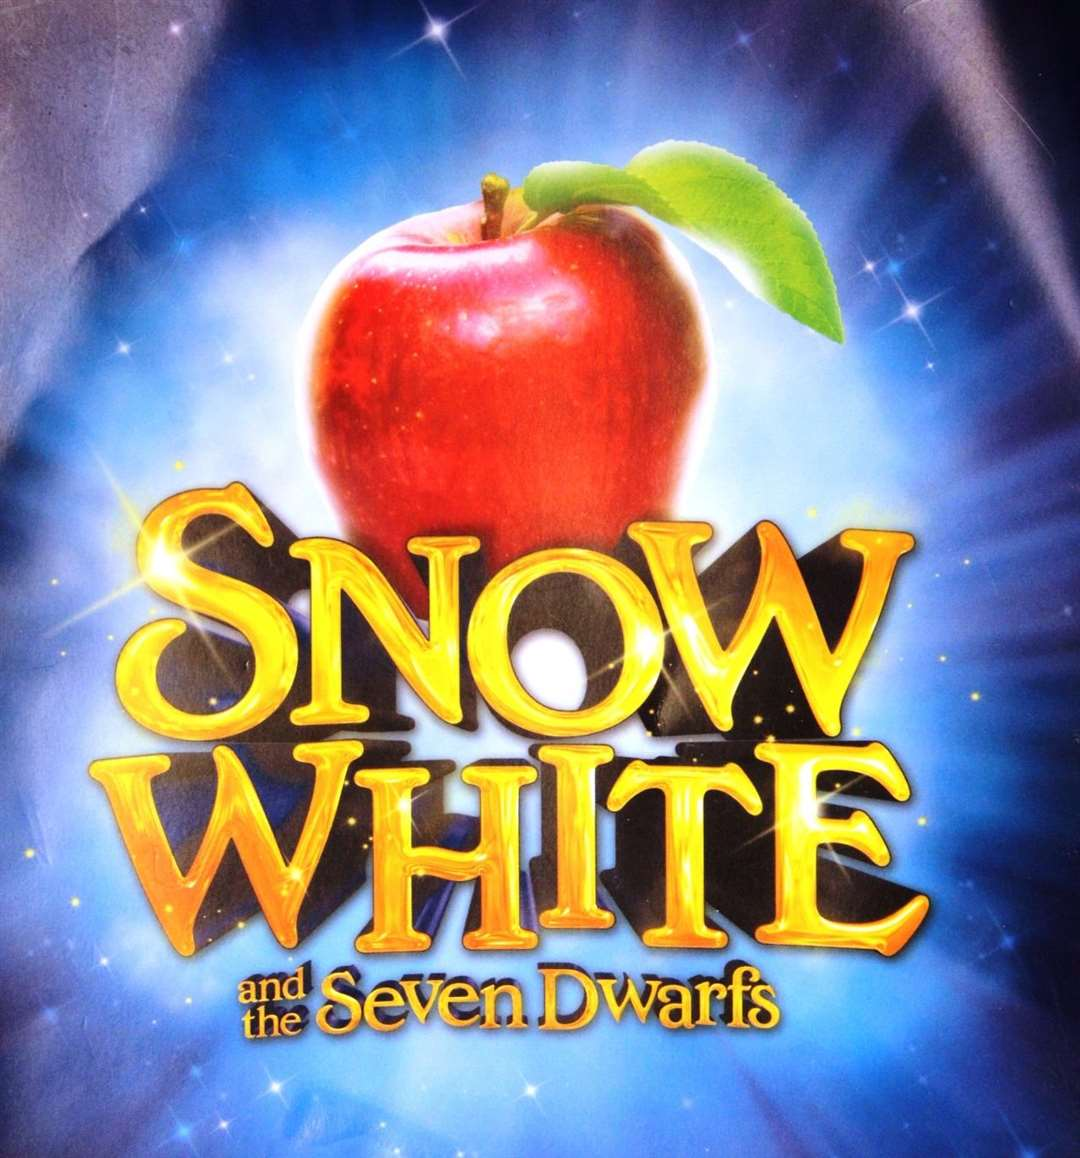 Snow White Maidstone Panto (6063420)